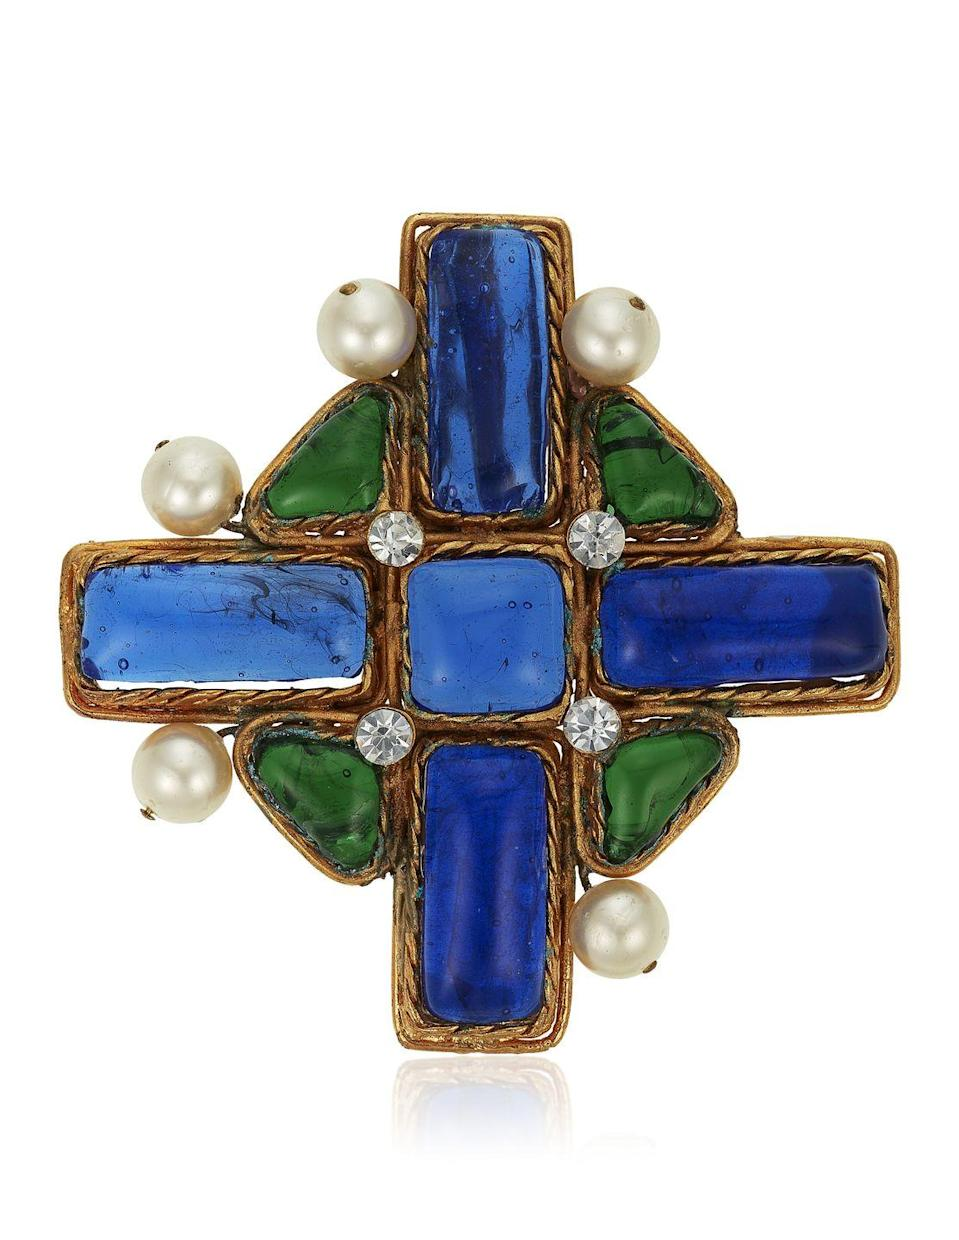 <p>This swoon-worthy brooch is estimated to be worth $1,000 to $1,500.</p>